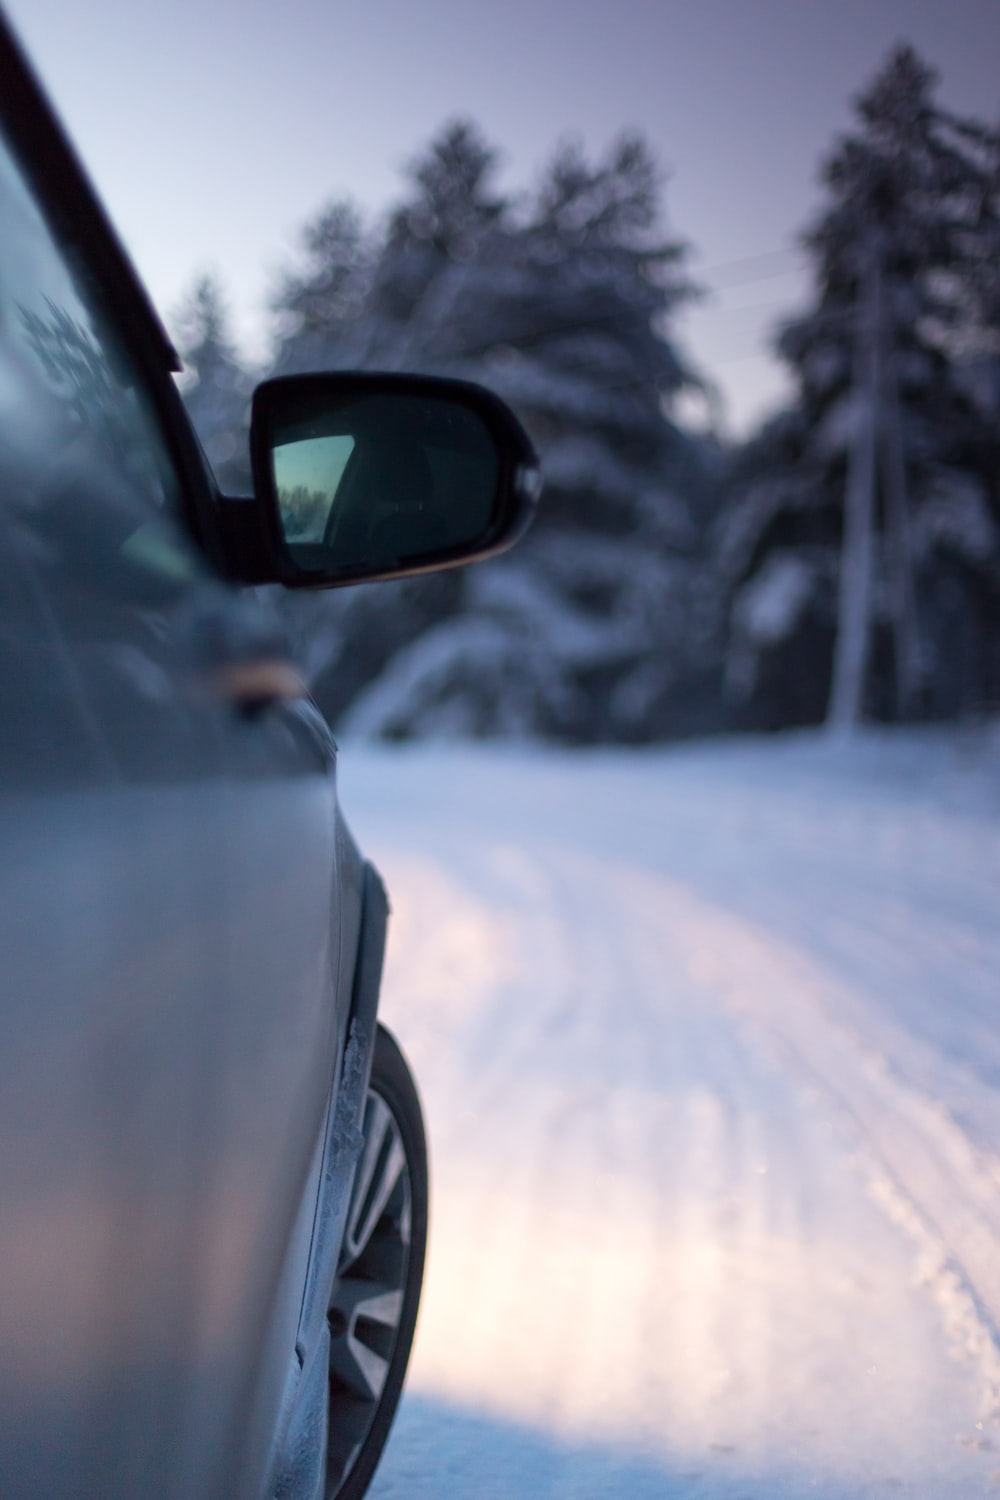 car side mirror with snow on the road